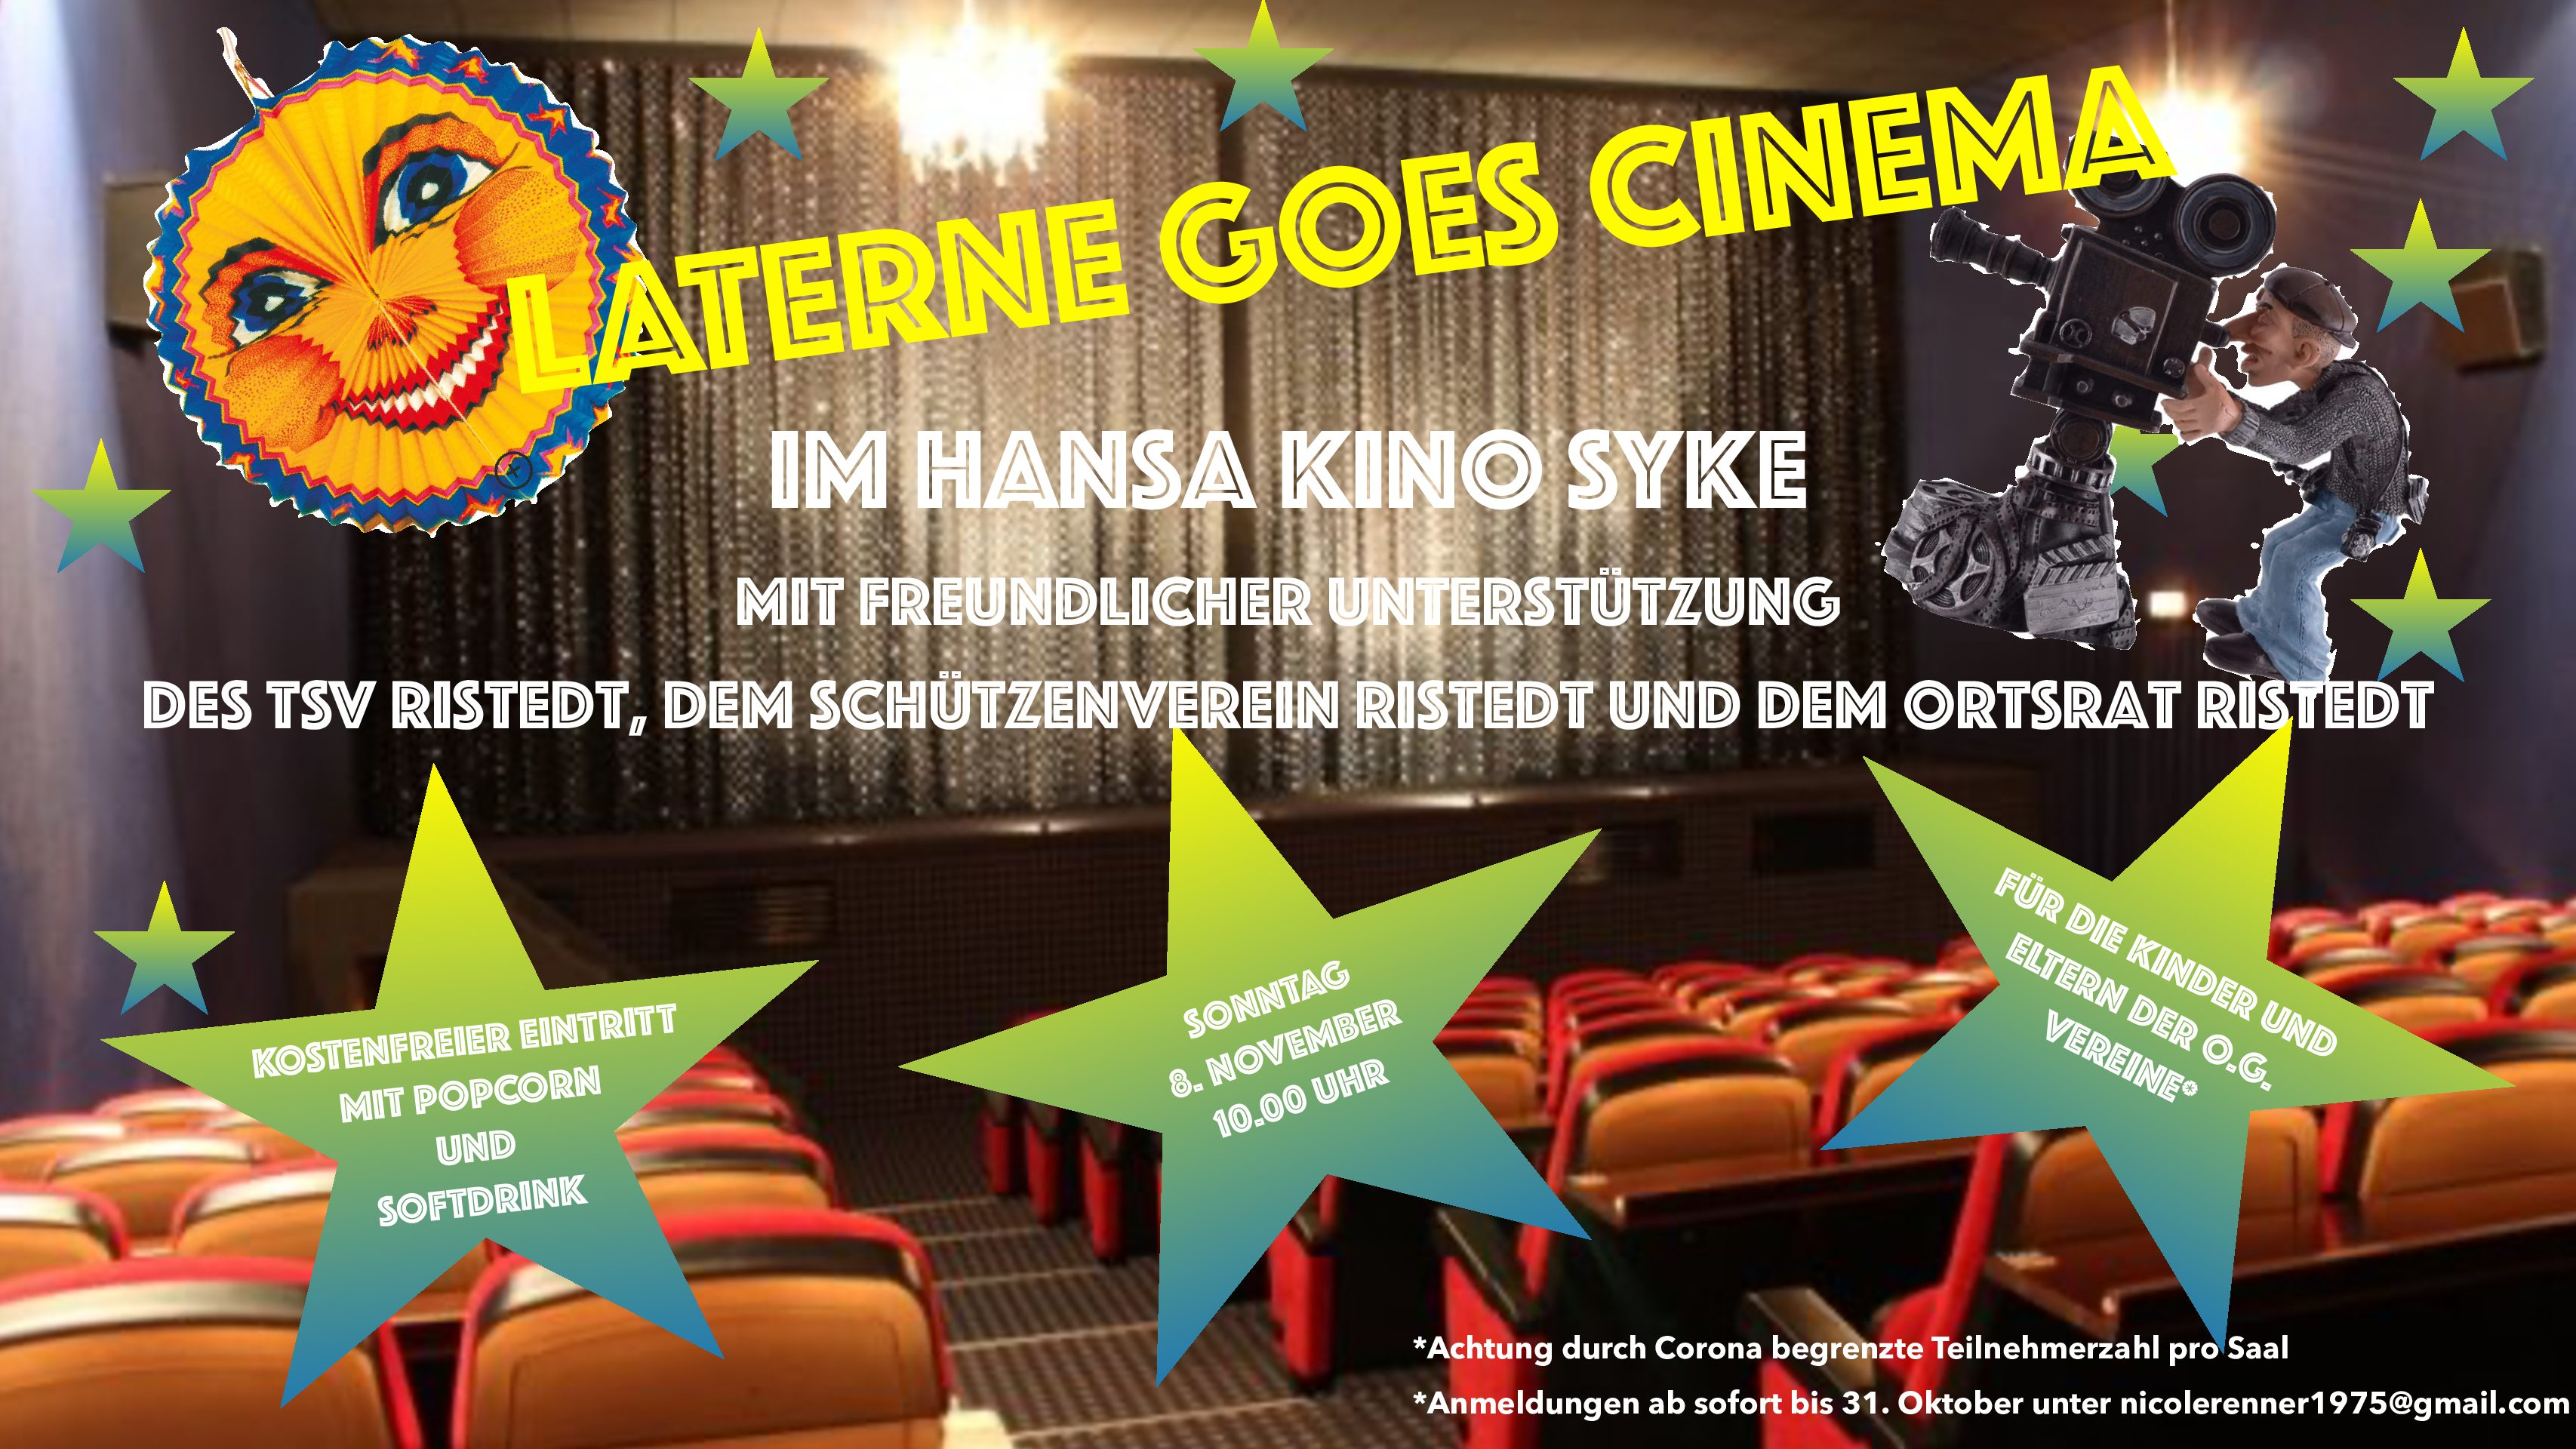 Laterne goes cinema